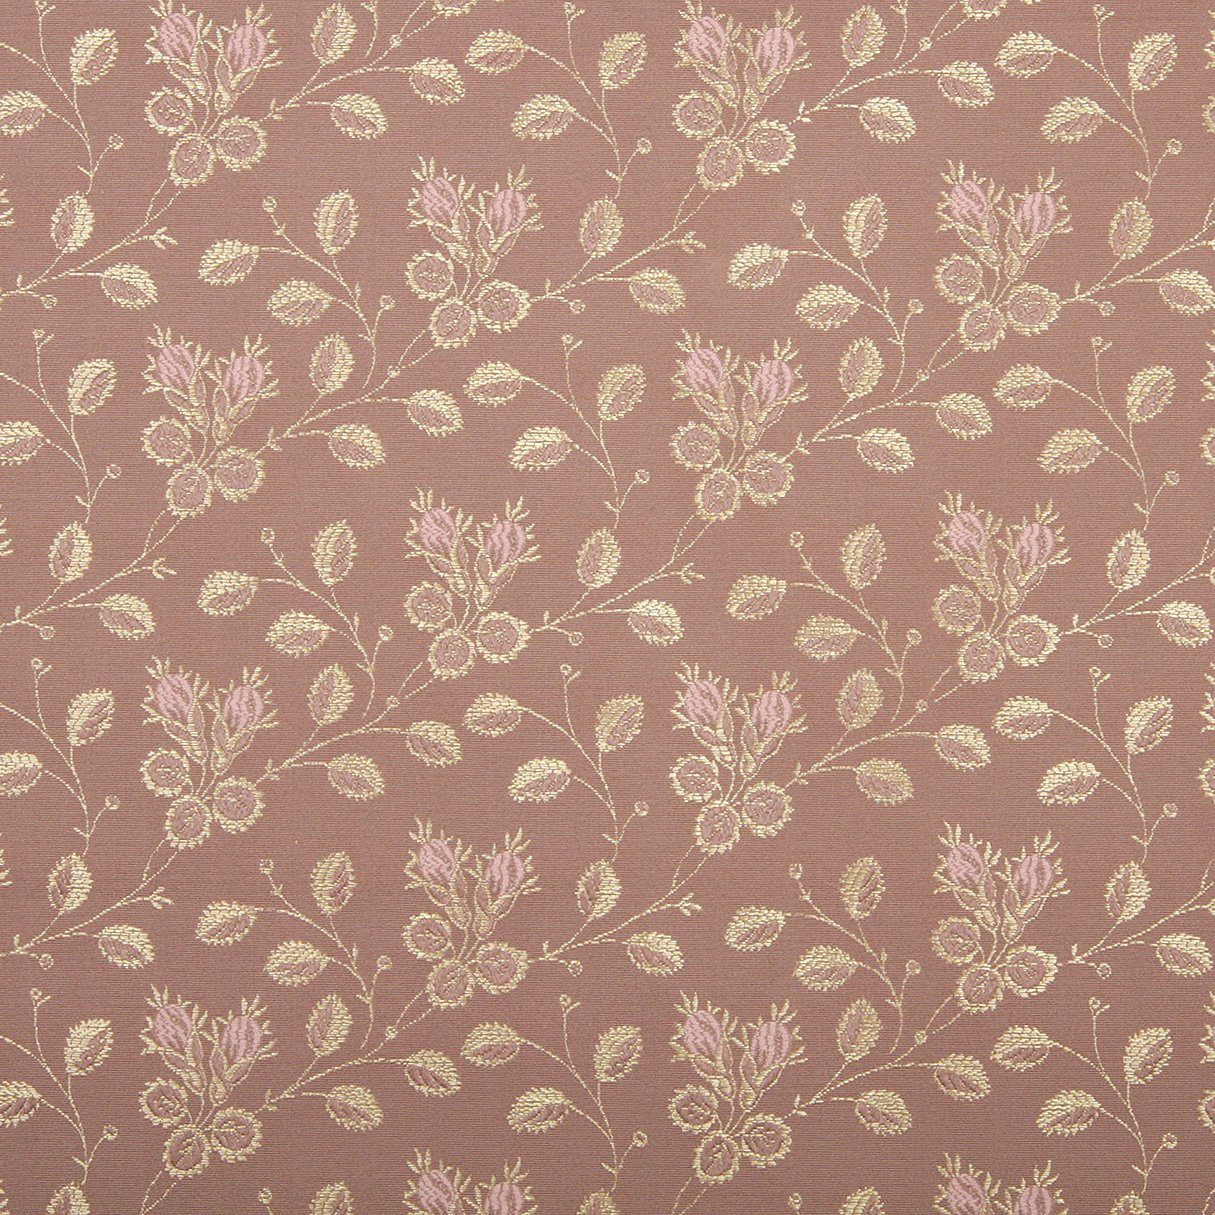 brocade sofa fabric world reviews 54 quot wide d142 gold and pink floral upholstery